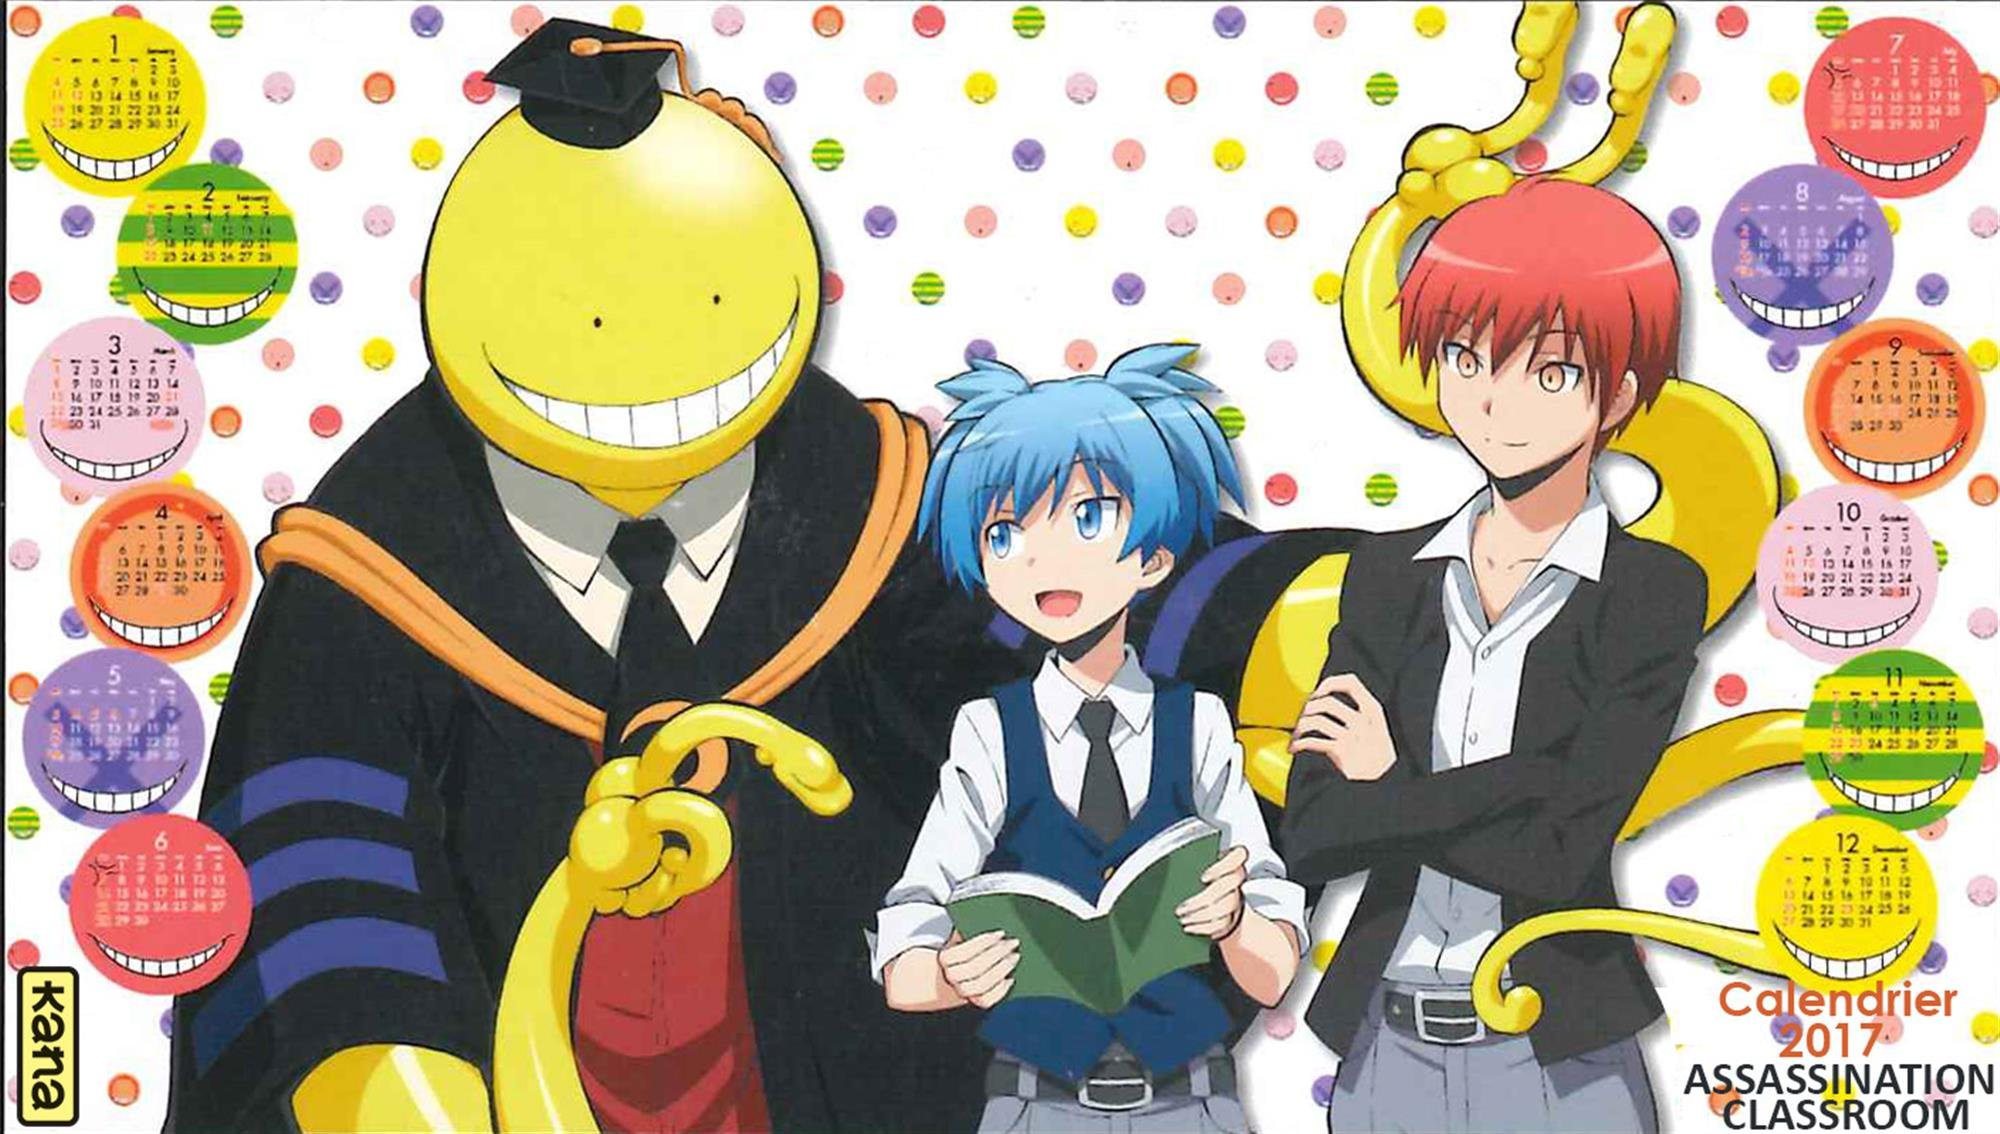 Koro-sensei, Nagisa, and Karma Assassination Classroom